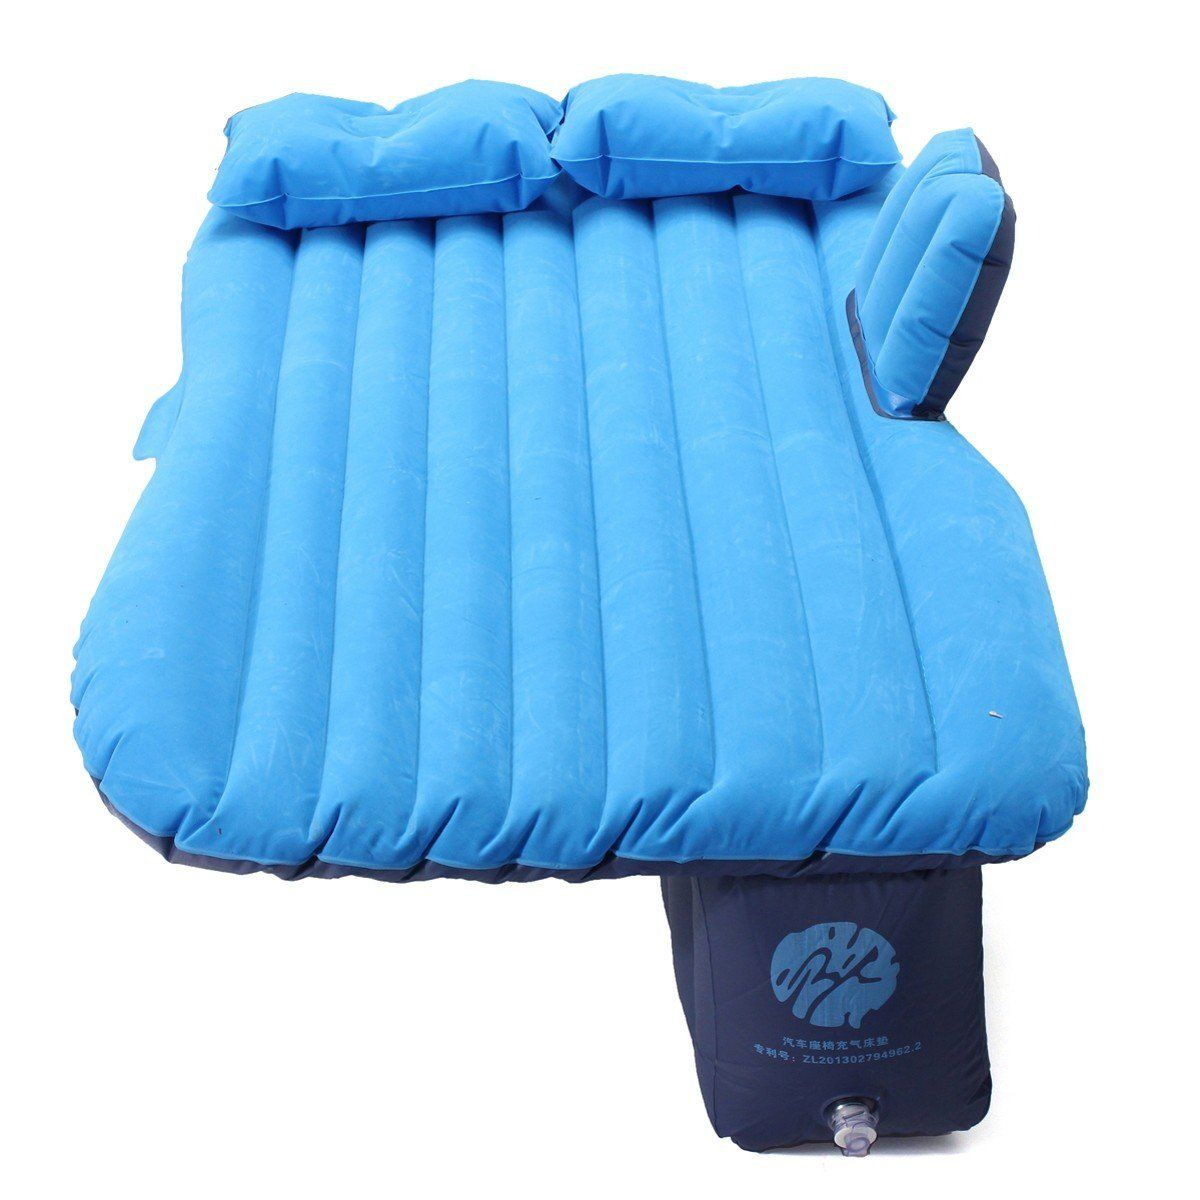 Materasso Letto Gonfiabile Airbed.King Do Way Letto Gonfiabile Auto Materasso Ad Aria Macchina